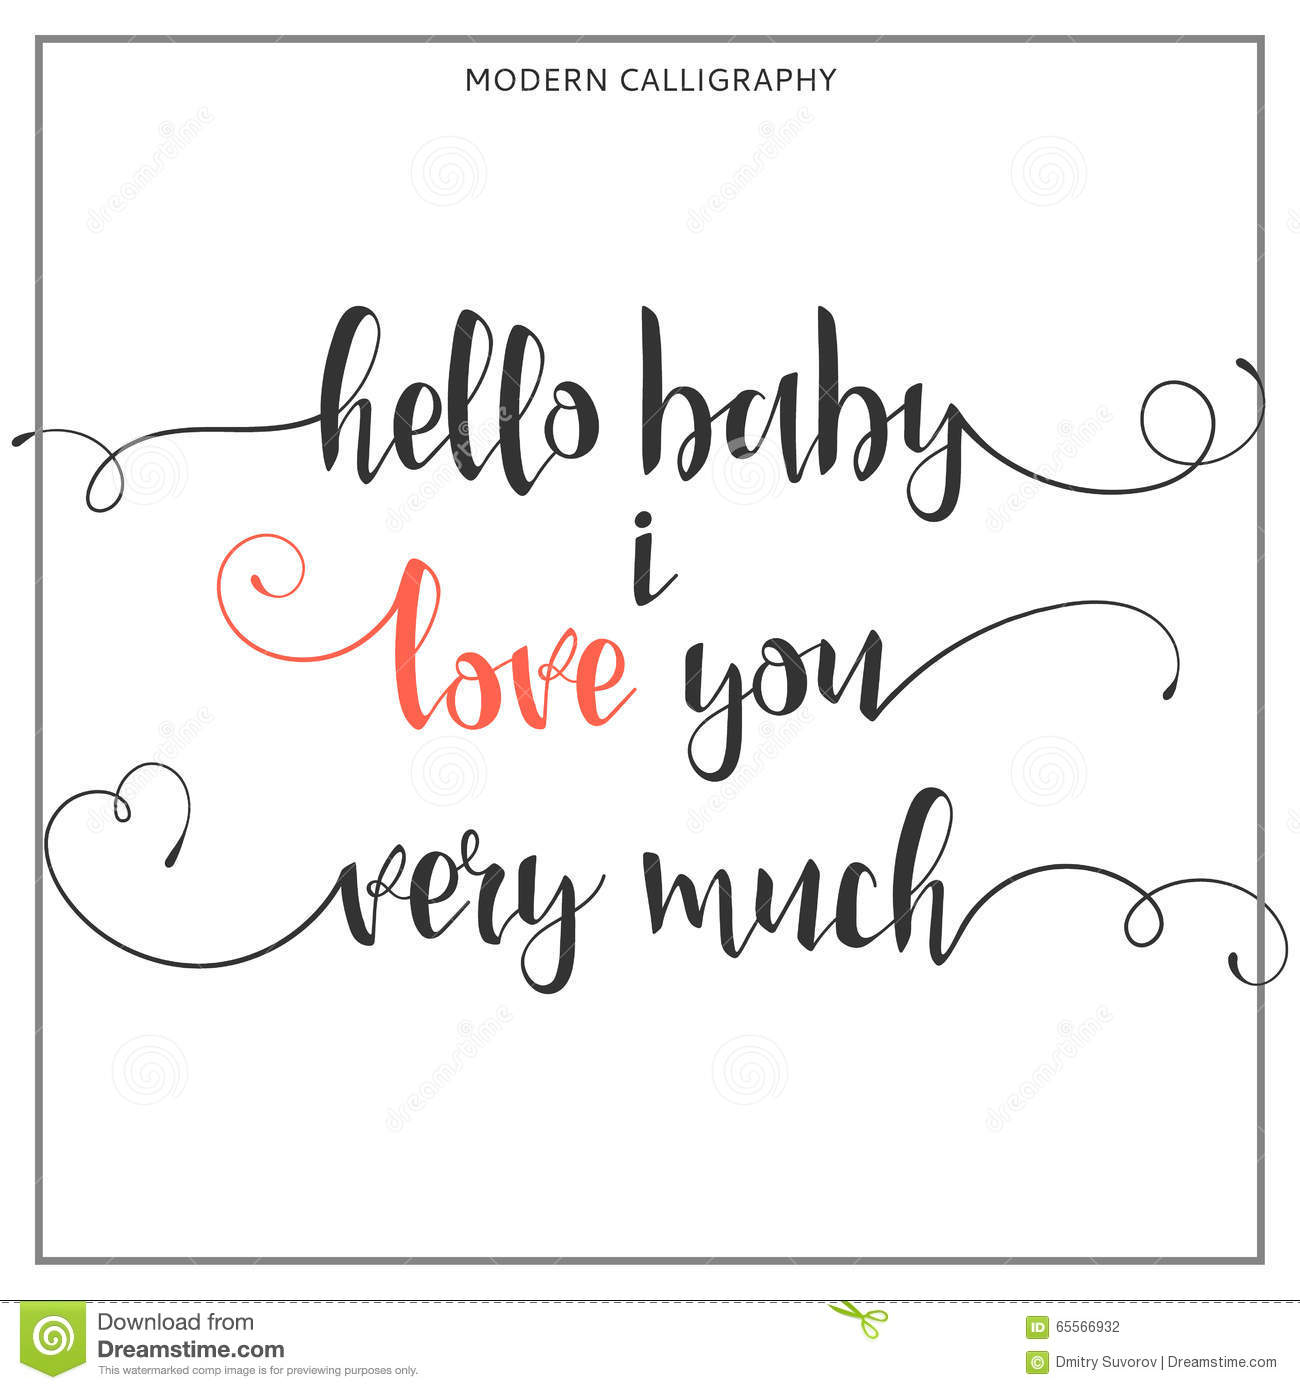 Royalty Free Vector Download Hello Baby I Love You Very Much Calligraphic Quote